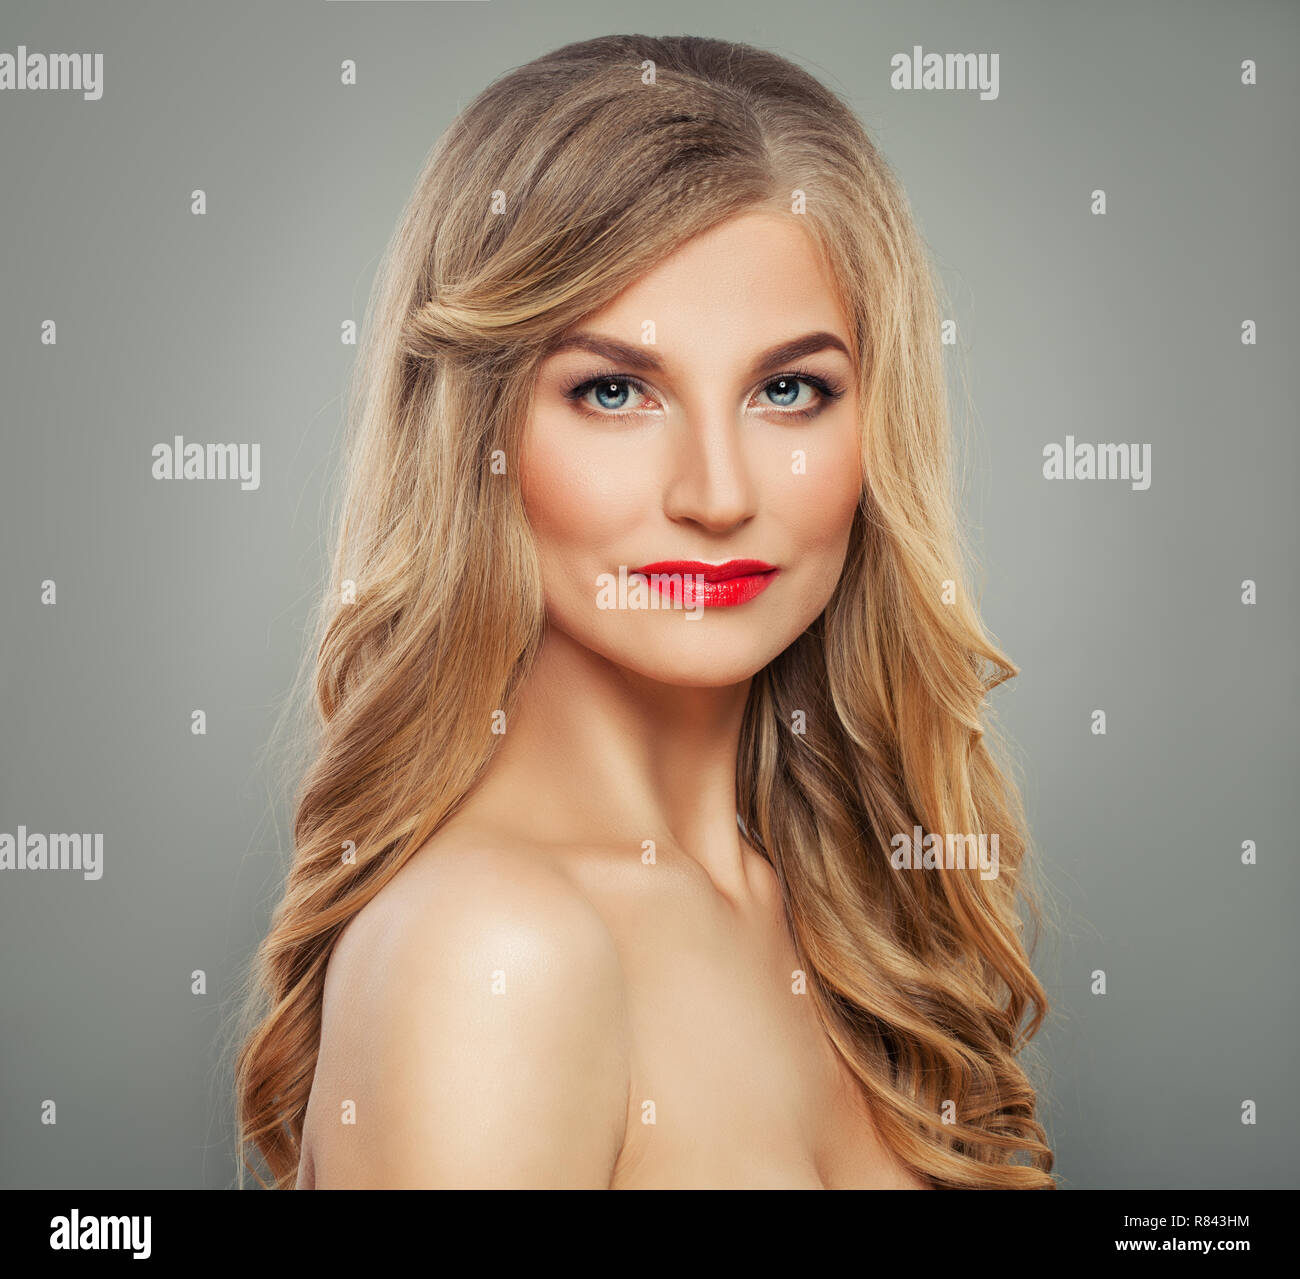 Blondie woman with long blonde hair and red lips makeup, fashion portrait